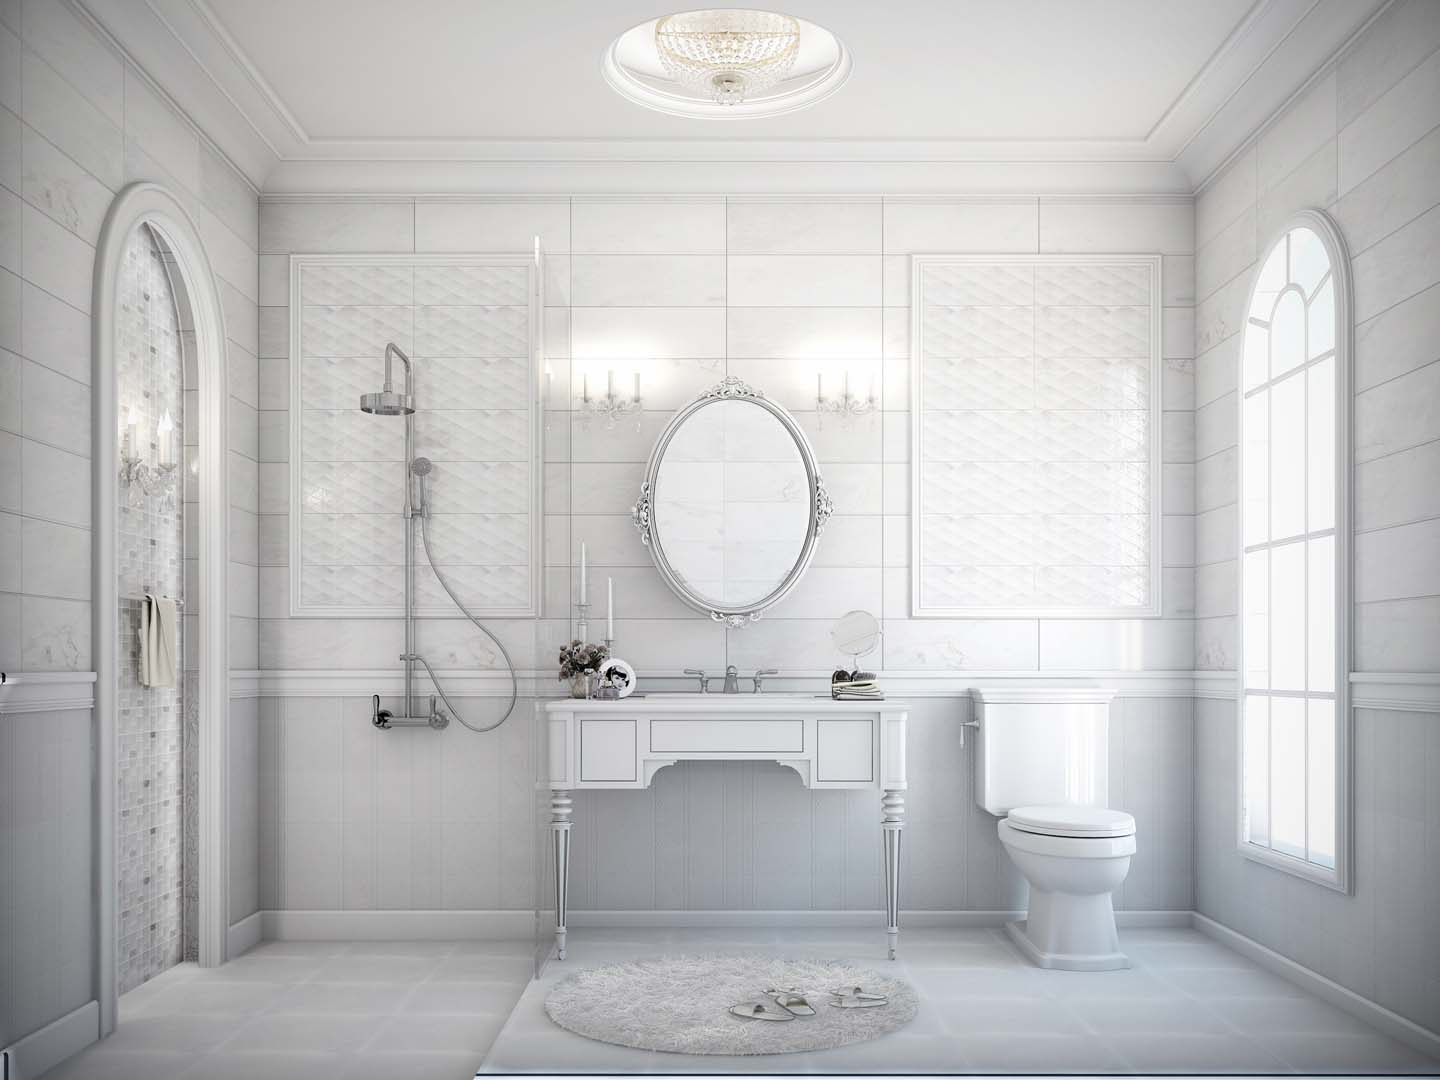 Gl Bathroom Tiles Image Of